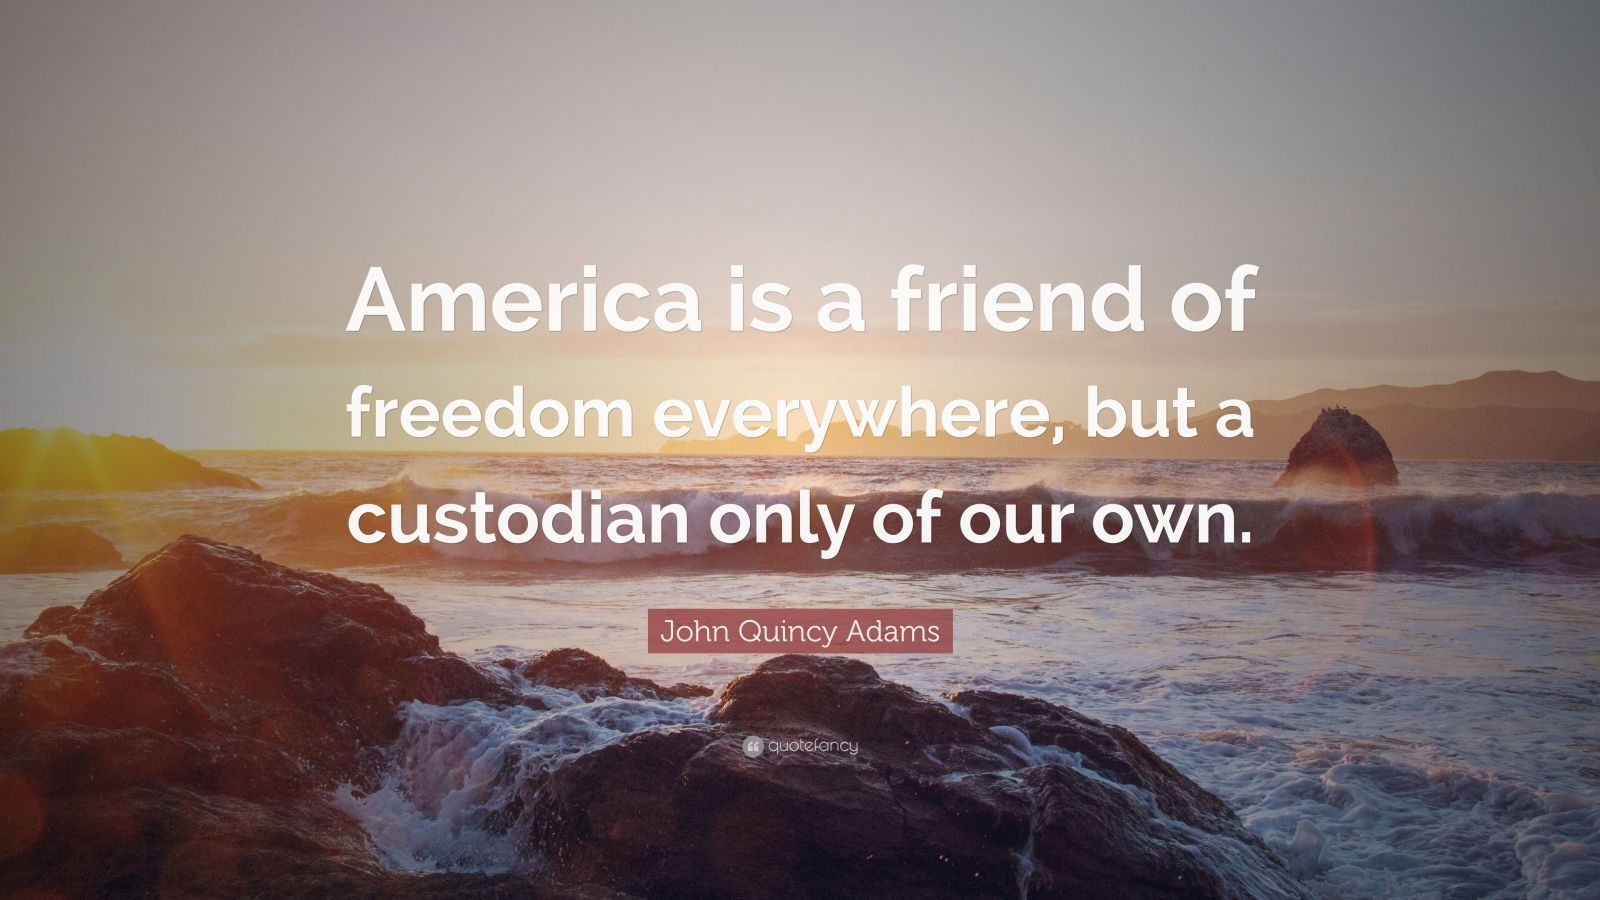 """John Quincy Adams Quote: """"America is a friend of freedom everywhere, but a custodian only of our own."""""""